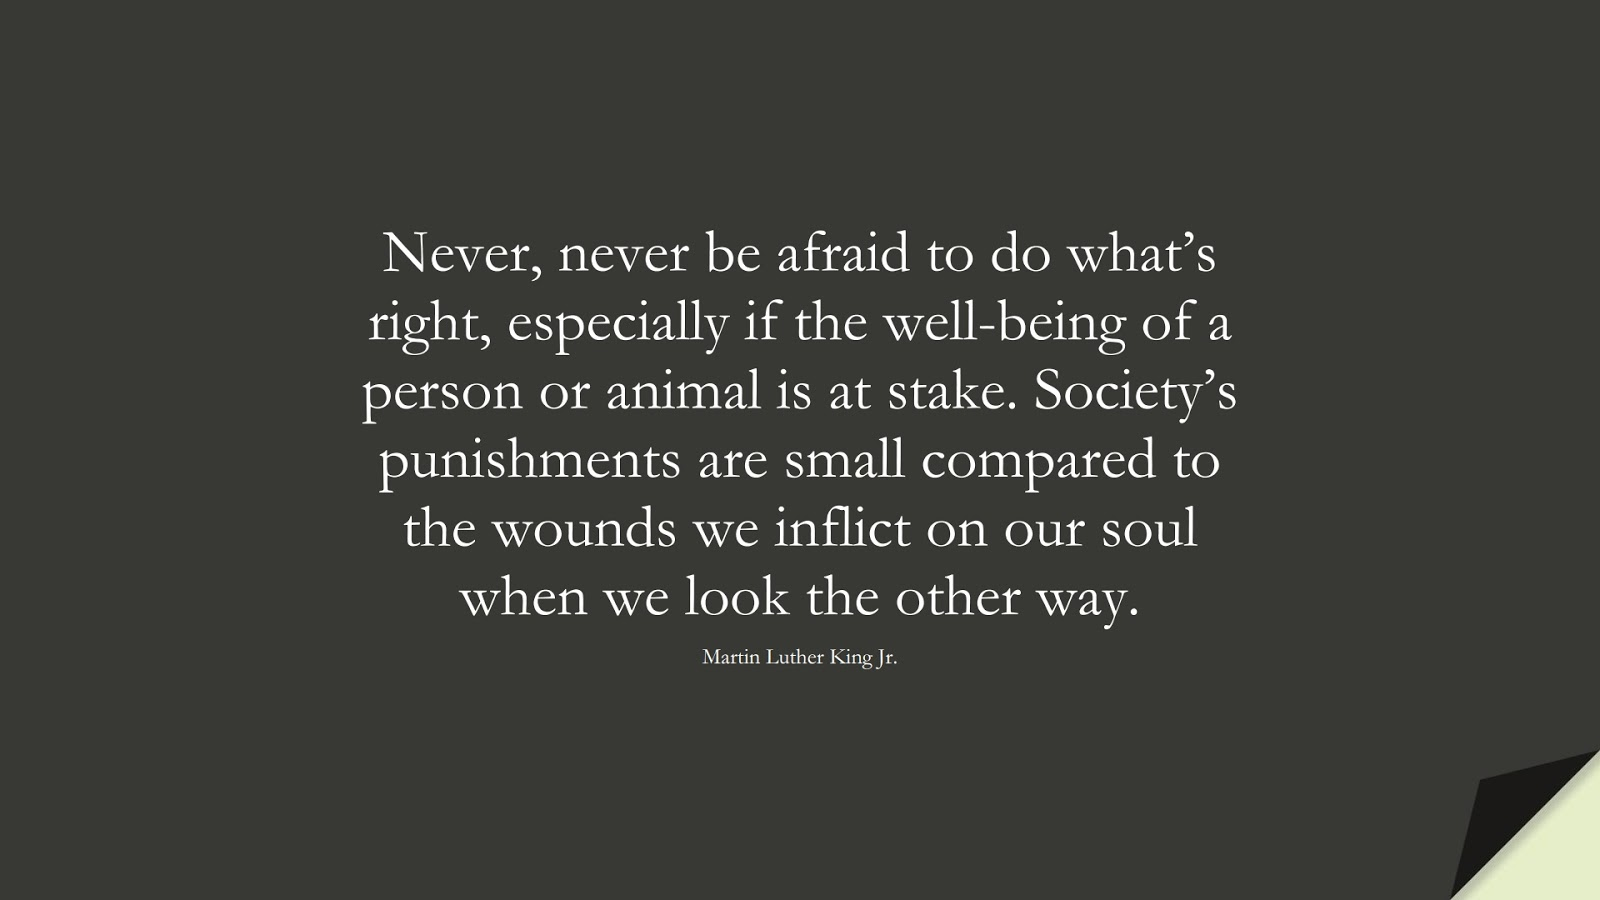 Never, never be afraid to do what's right, especially if the well-being of a person or animal is at stake. Society's punishments are small compared to the wounds we inflict on our soul when we look the other way. (Martin Luther King Jr.);  #MartinLutherKingJrQuotes